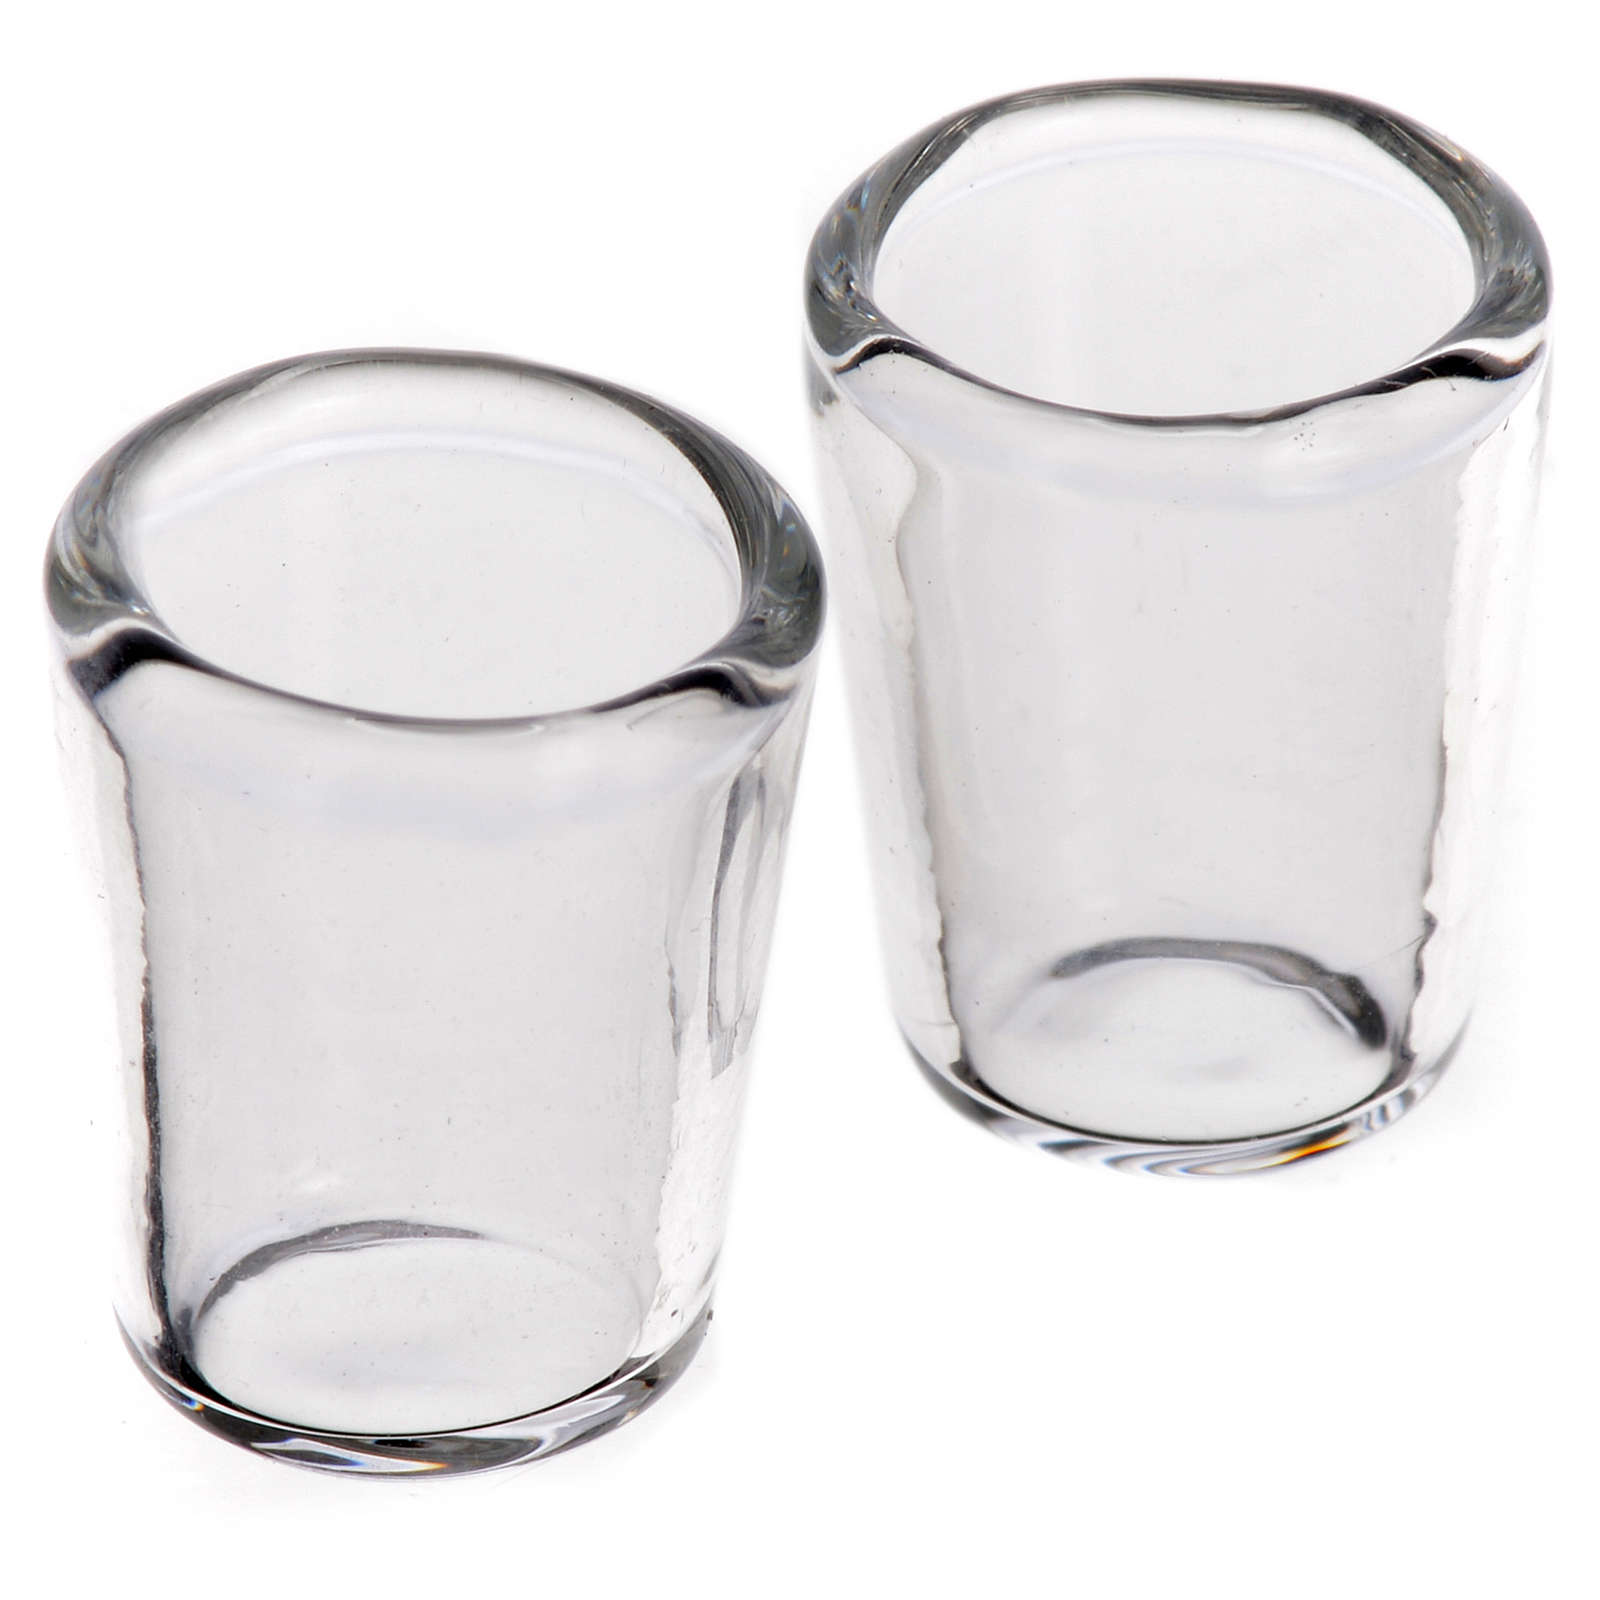 Glass cup, 1.2x1.2cm for nativities, set of 2 4